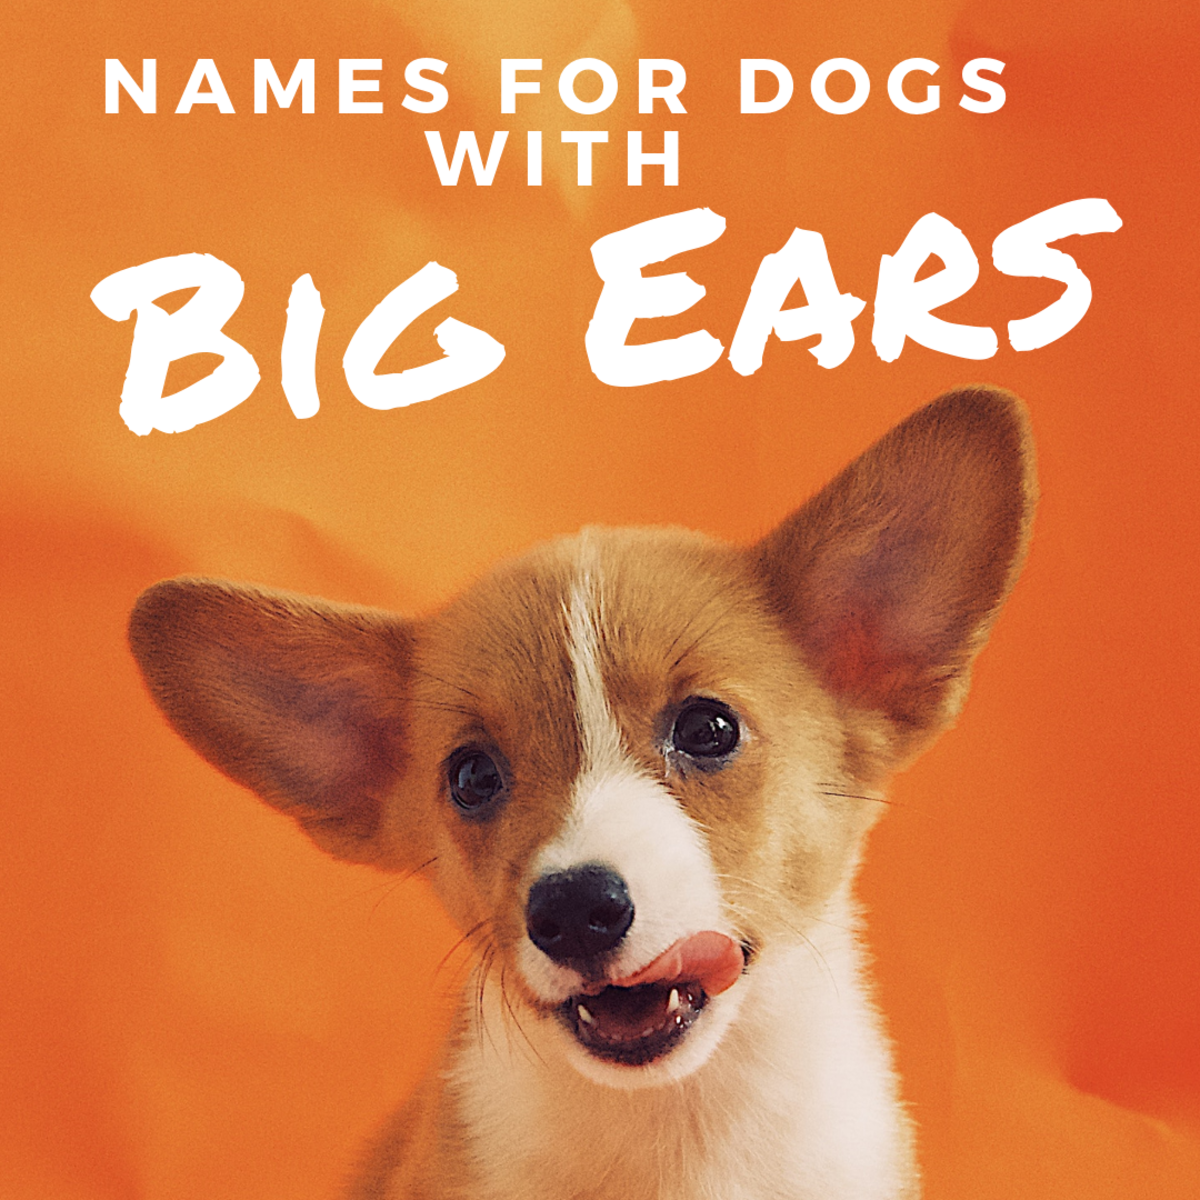 50 Best Names for Dogs With Big Ears or Floppy Ears